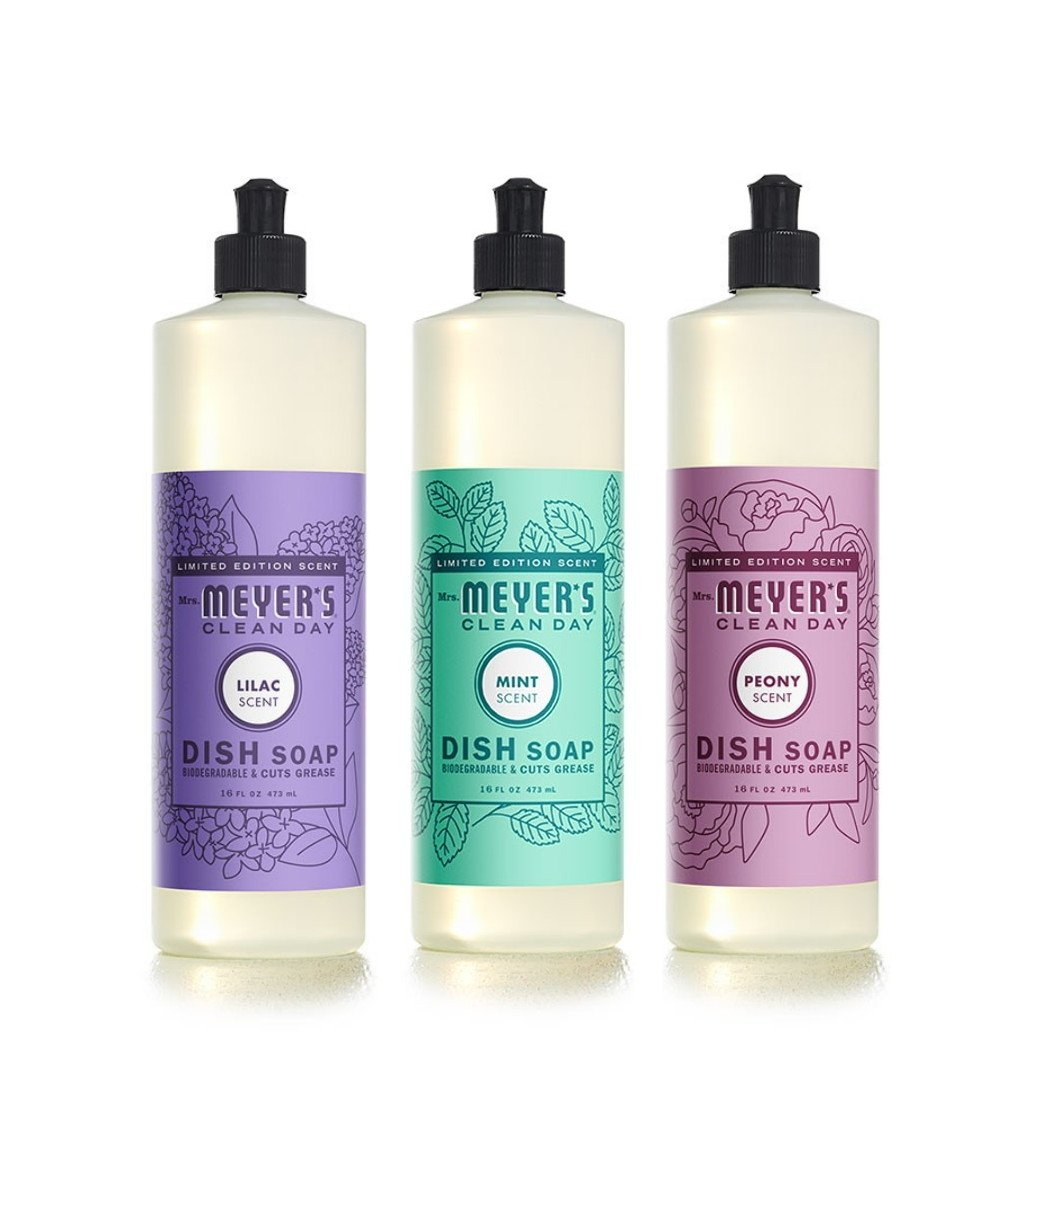 Mrs. Meyers Limited Edition Spring Dish Soap Bundle: 3 items - (1) Lilac Dish Soap, (1) Mint Dish Soap, (1) Peony Dish Soap